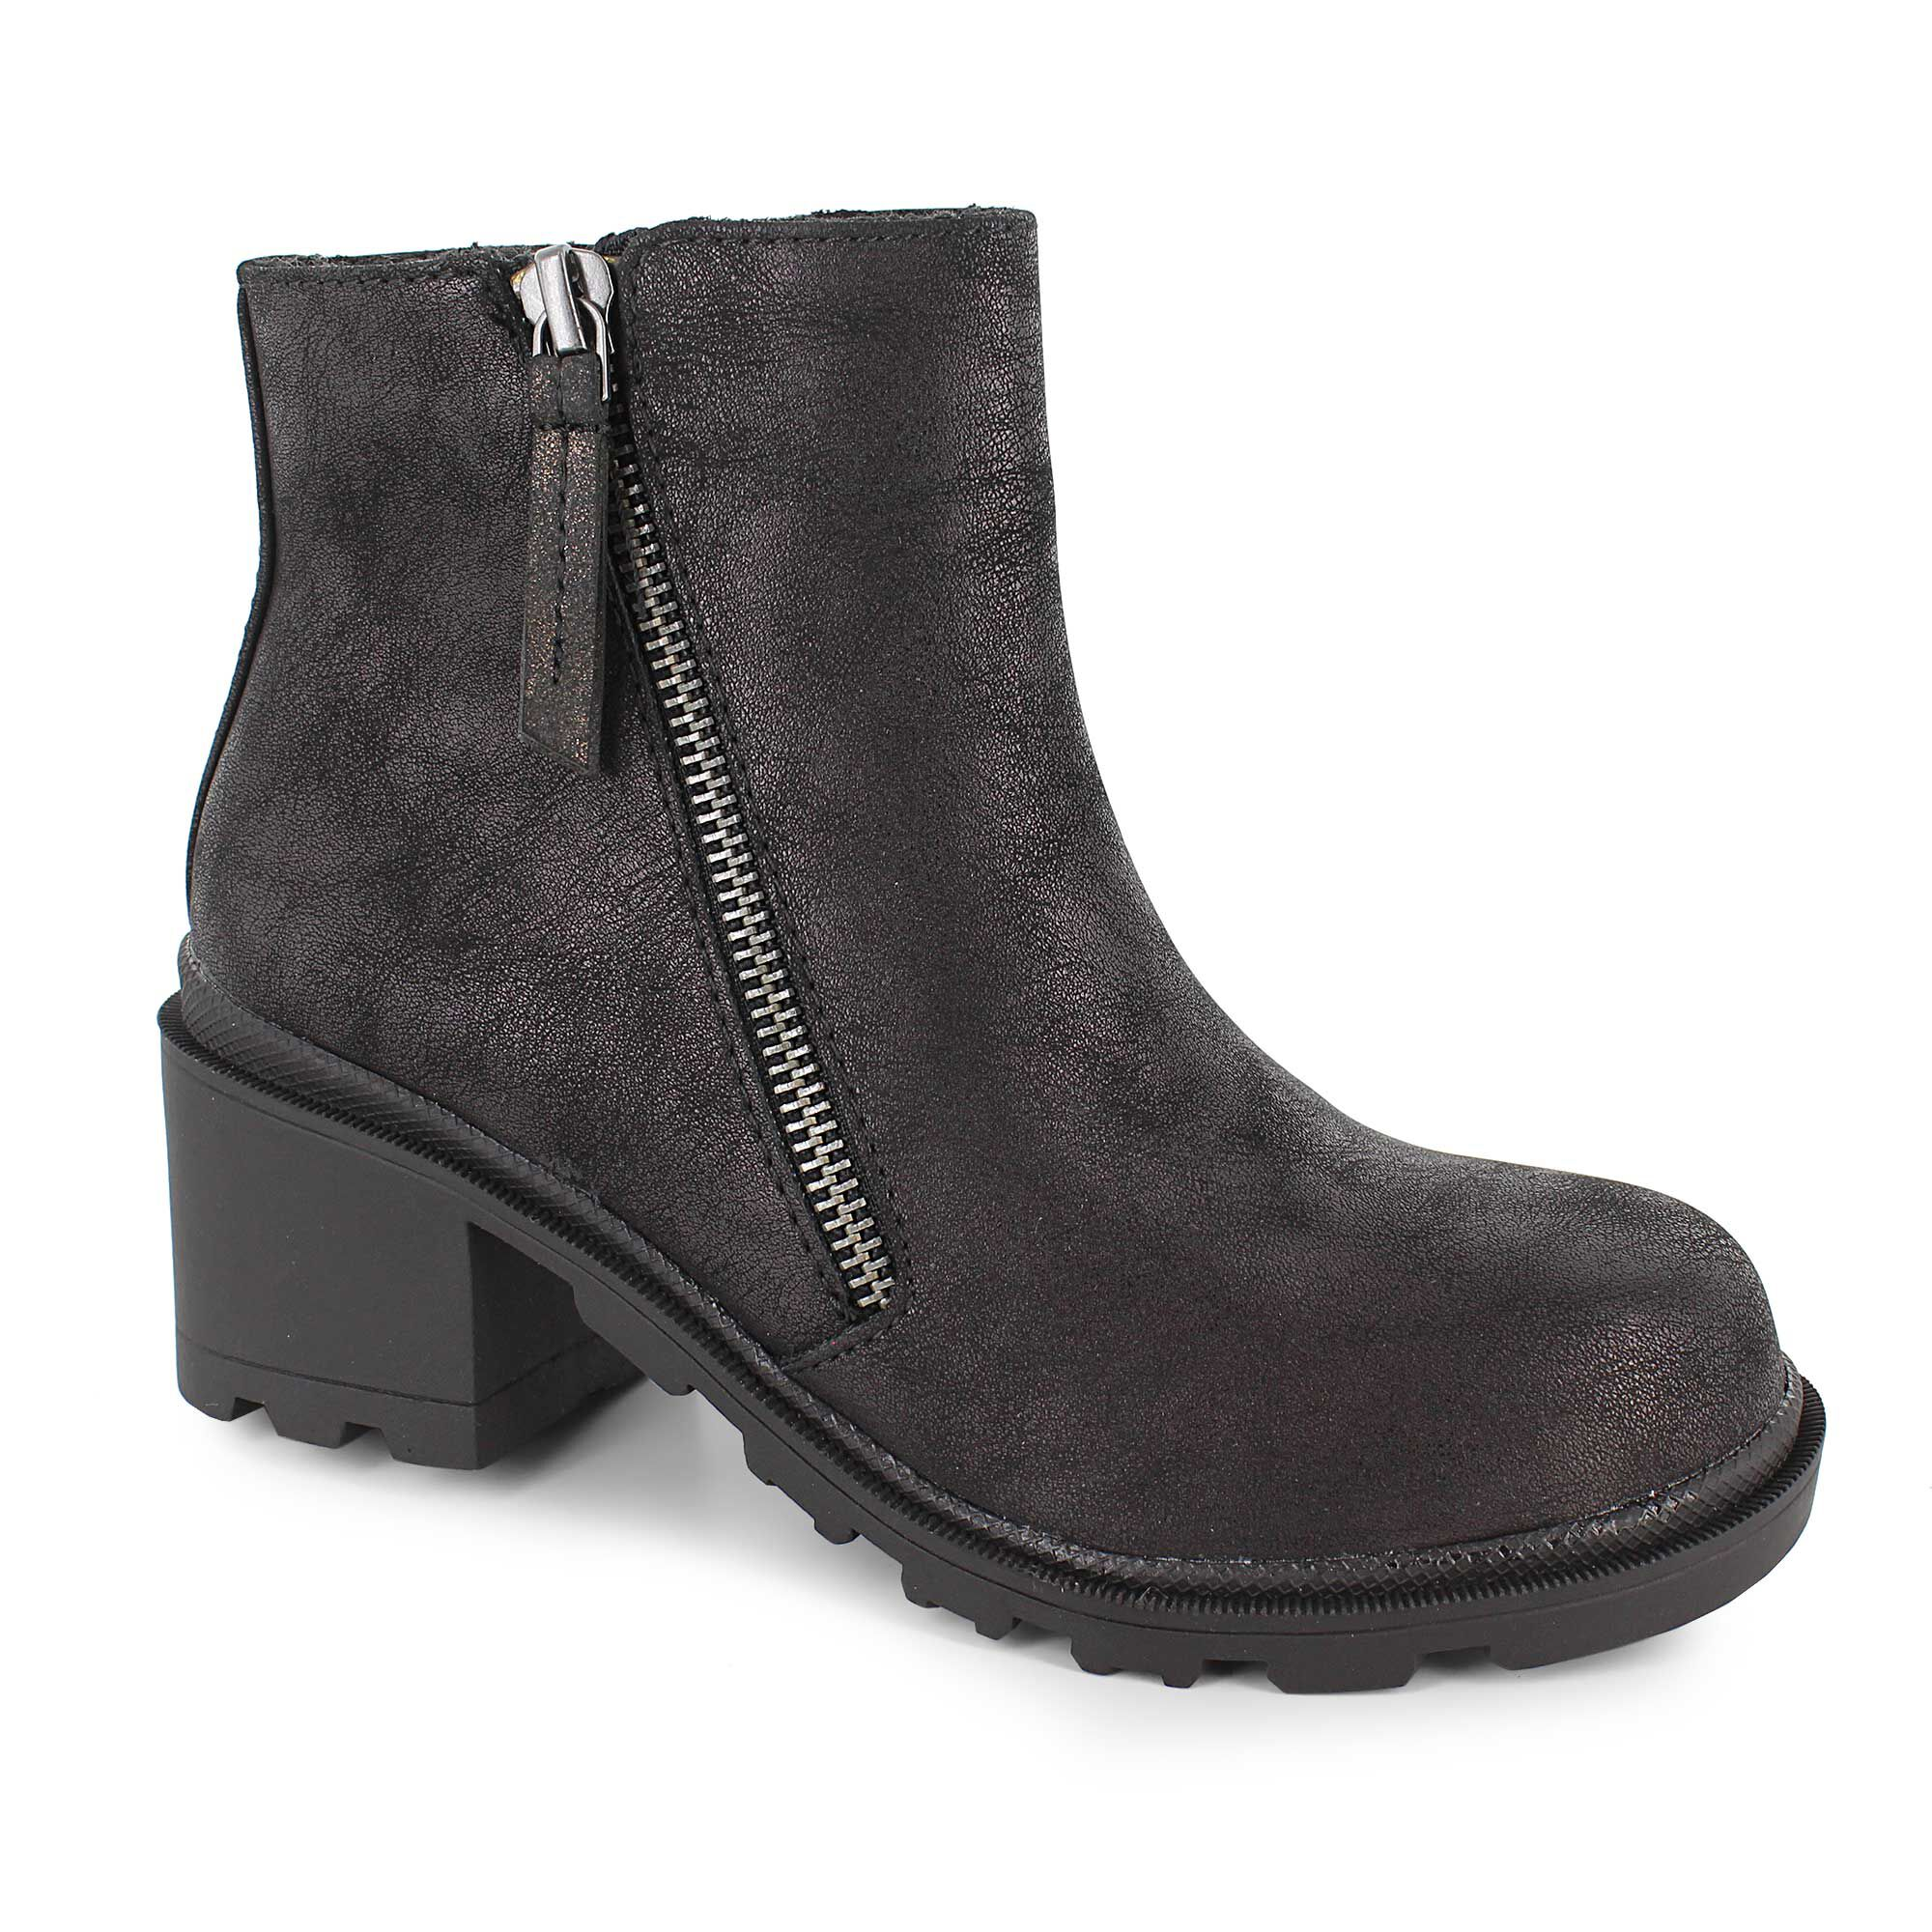 jellypop boots for girls